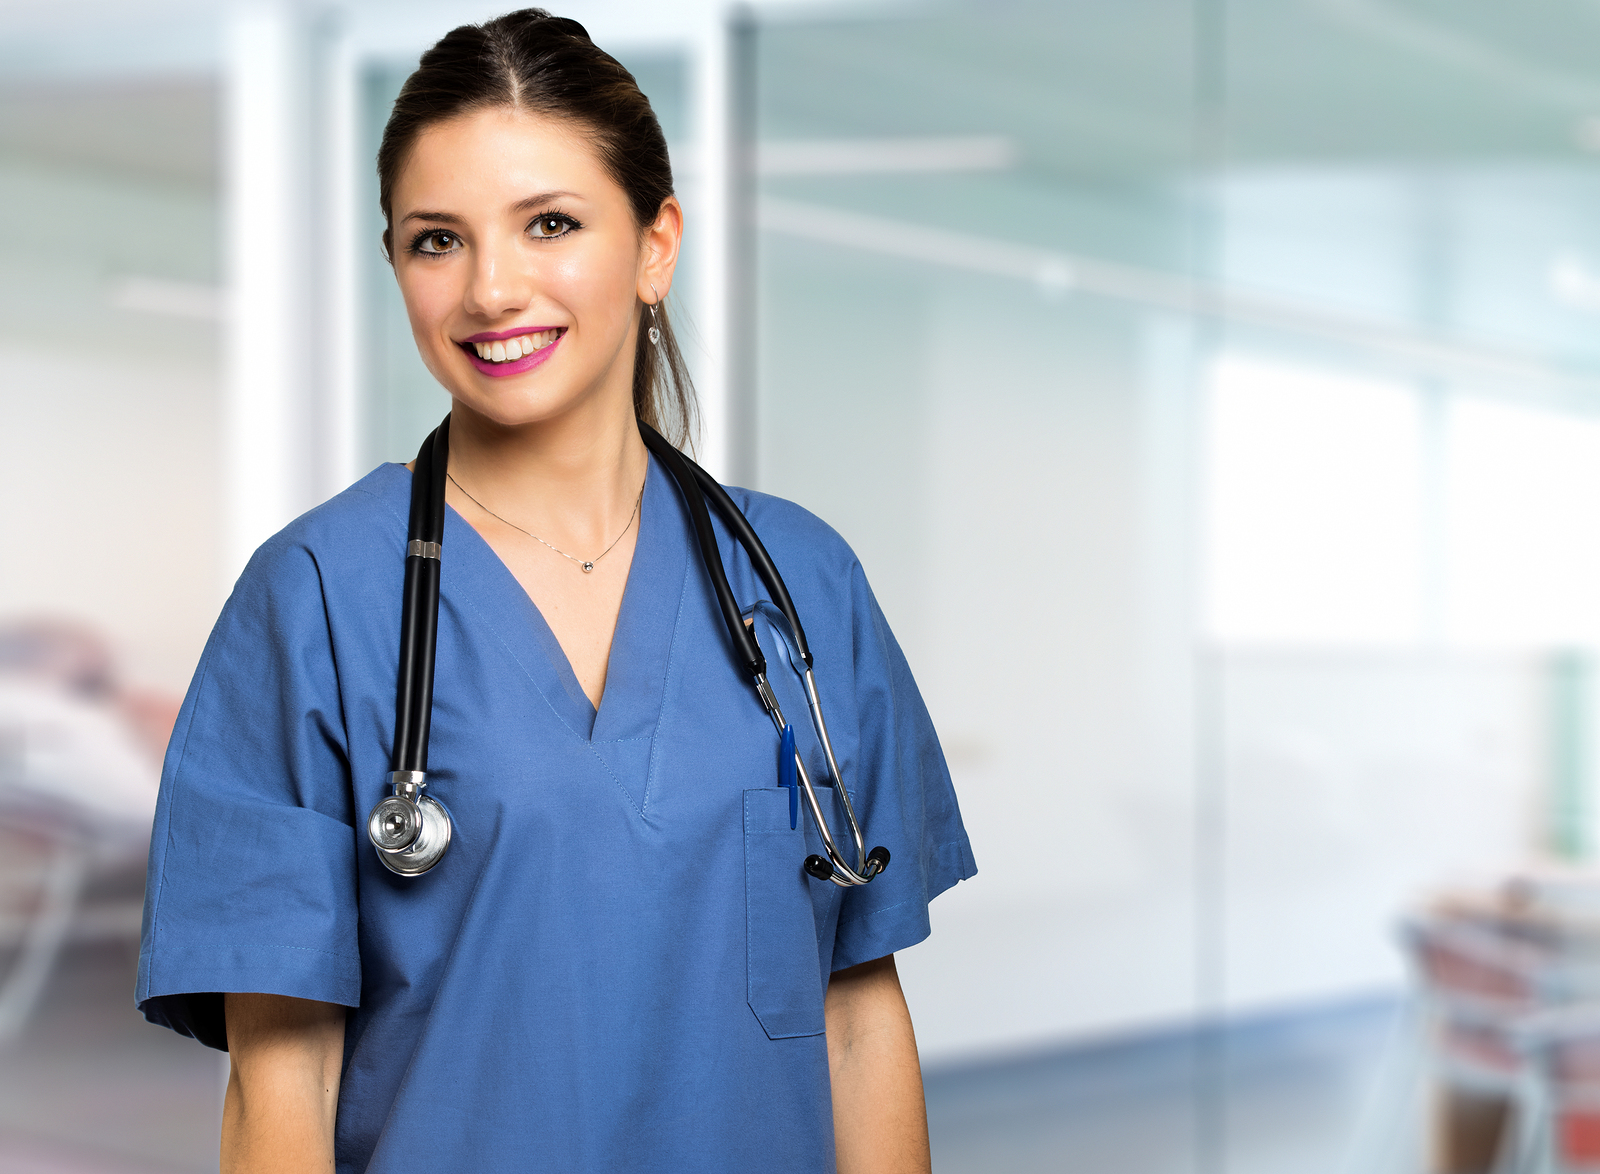 Free Test Prep for the NCLEX-RN exam